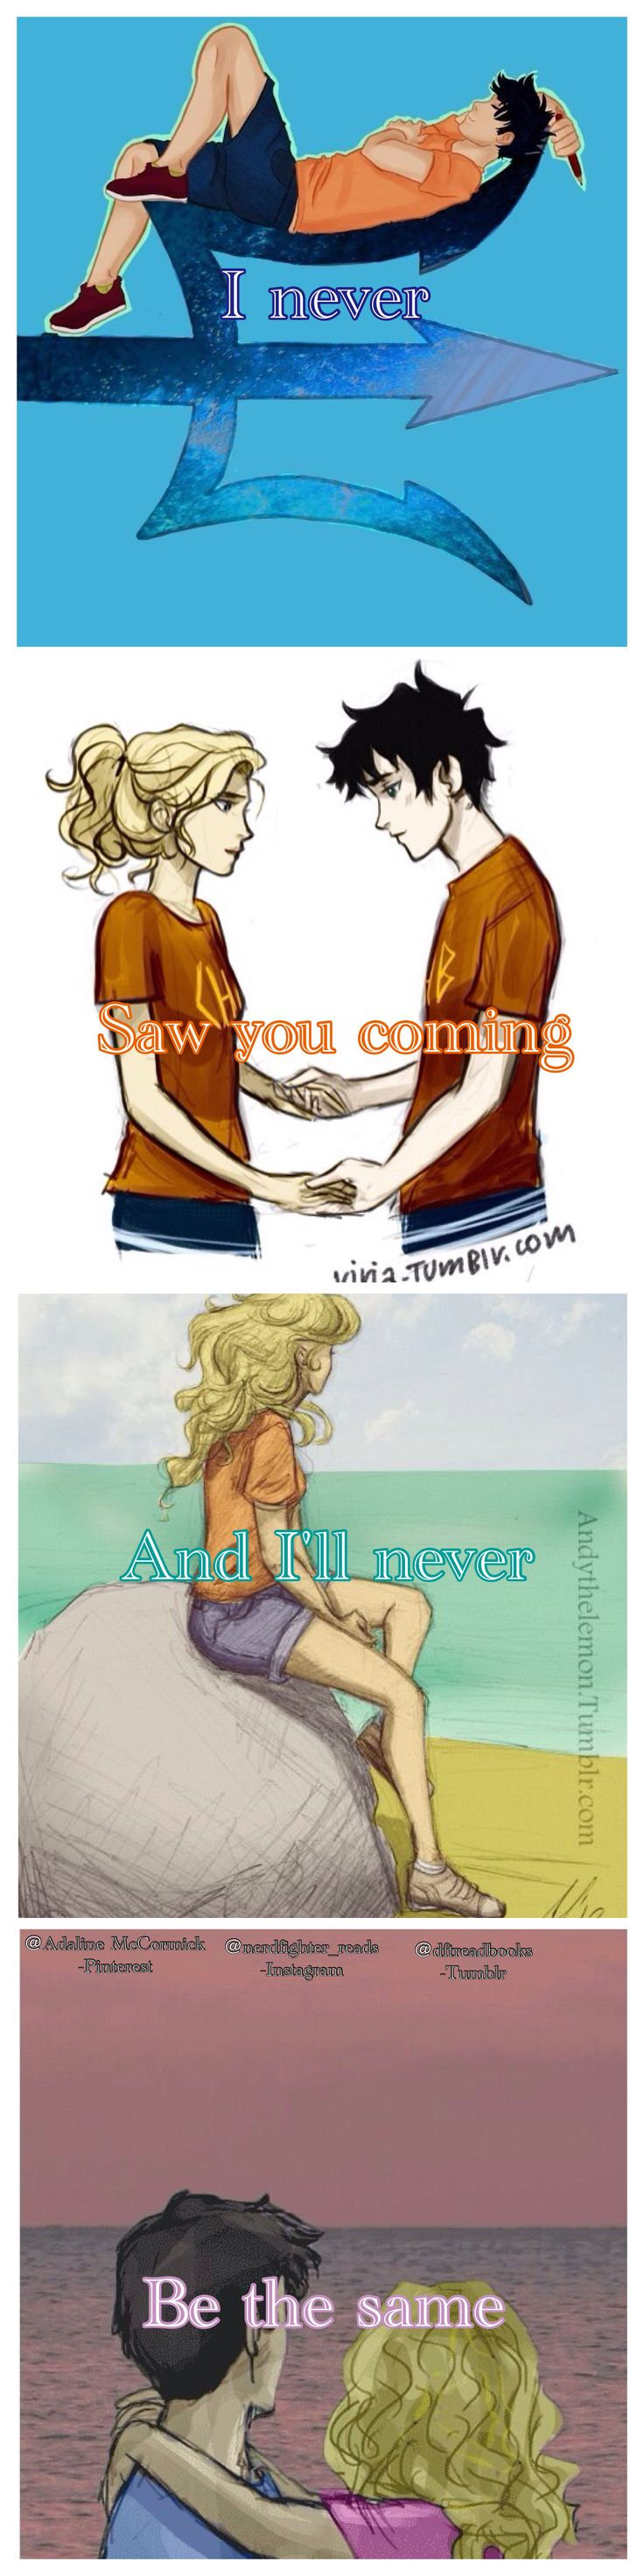 Percabeth/ State of Grace by Taylor Swift <3 <3